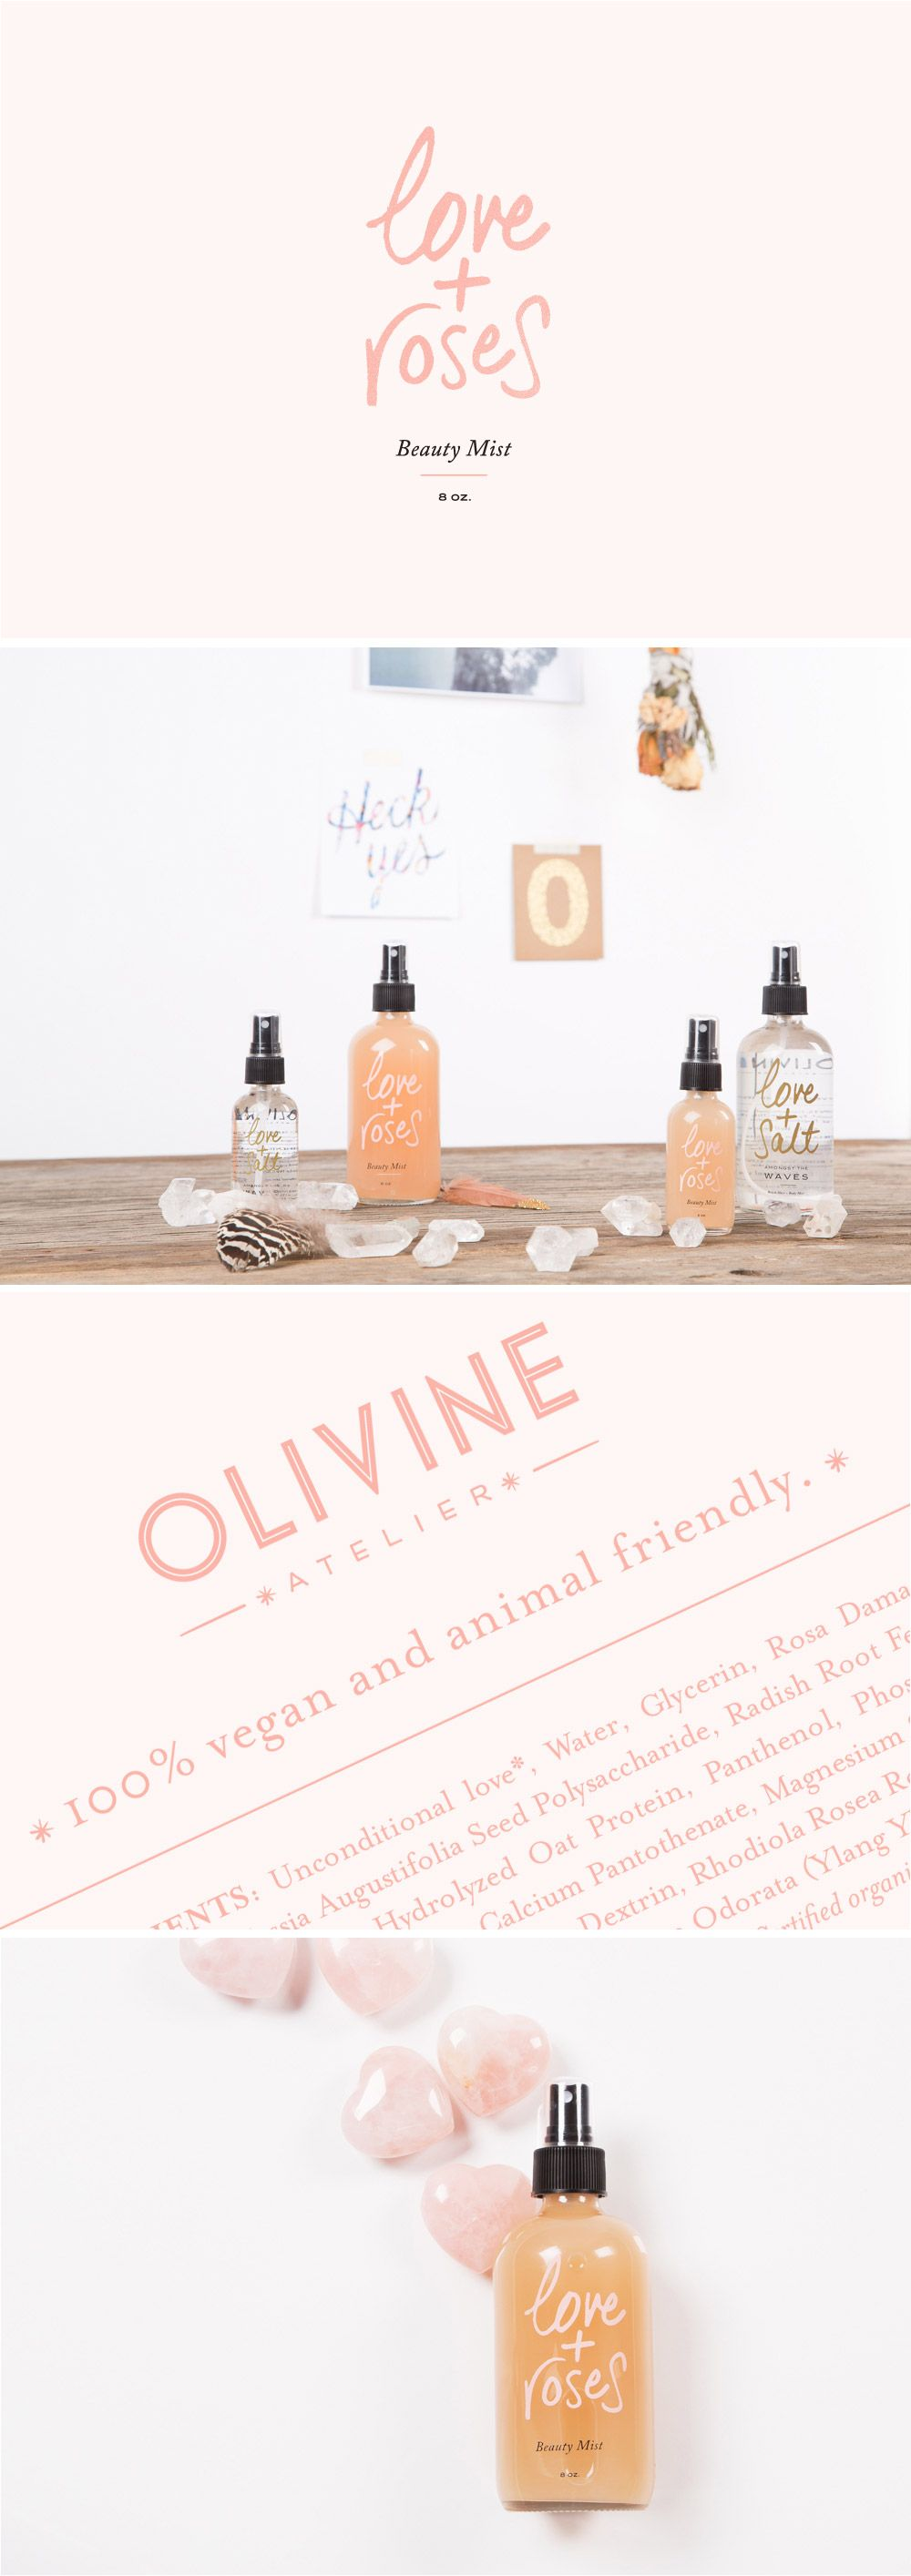 Branch   Olivine Atelier Love And Roses Beauty Mist